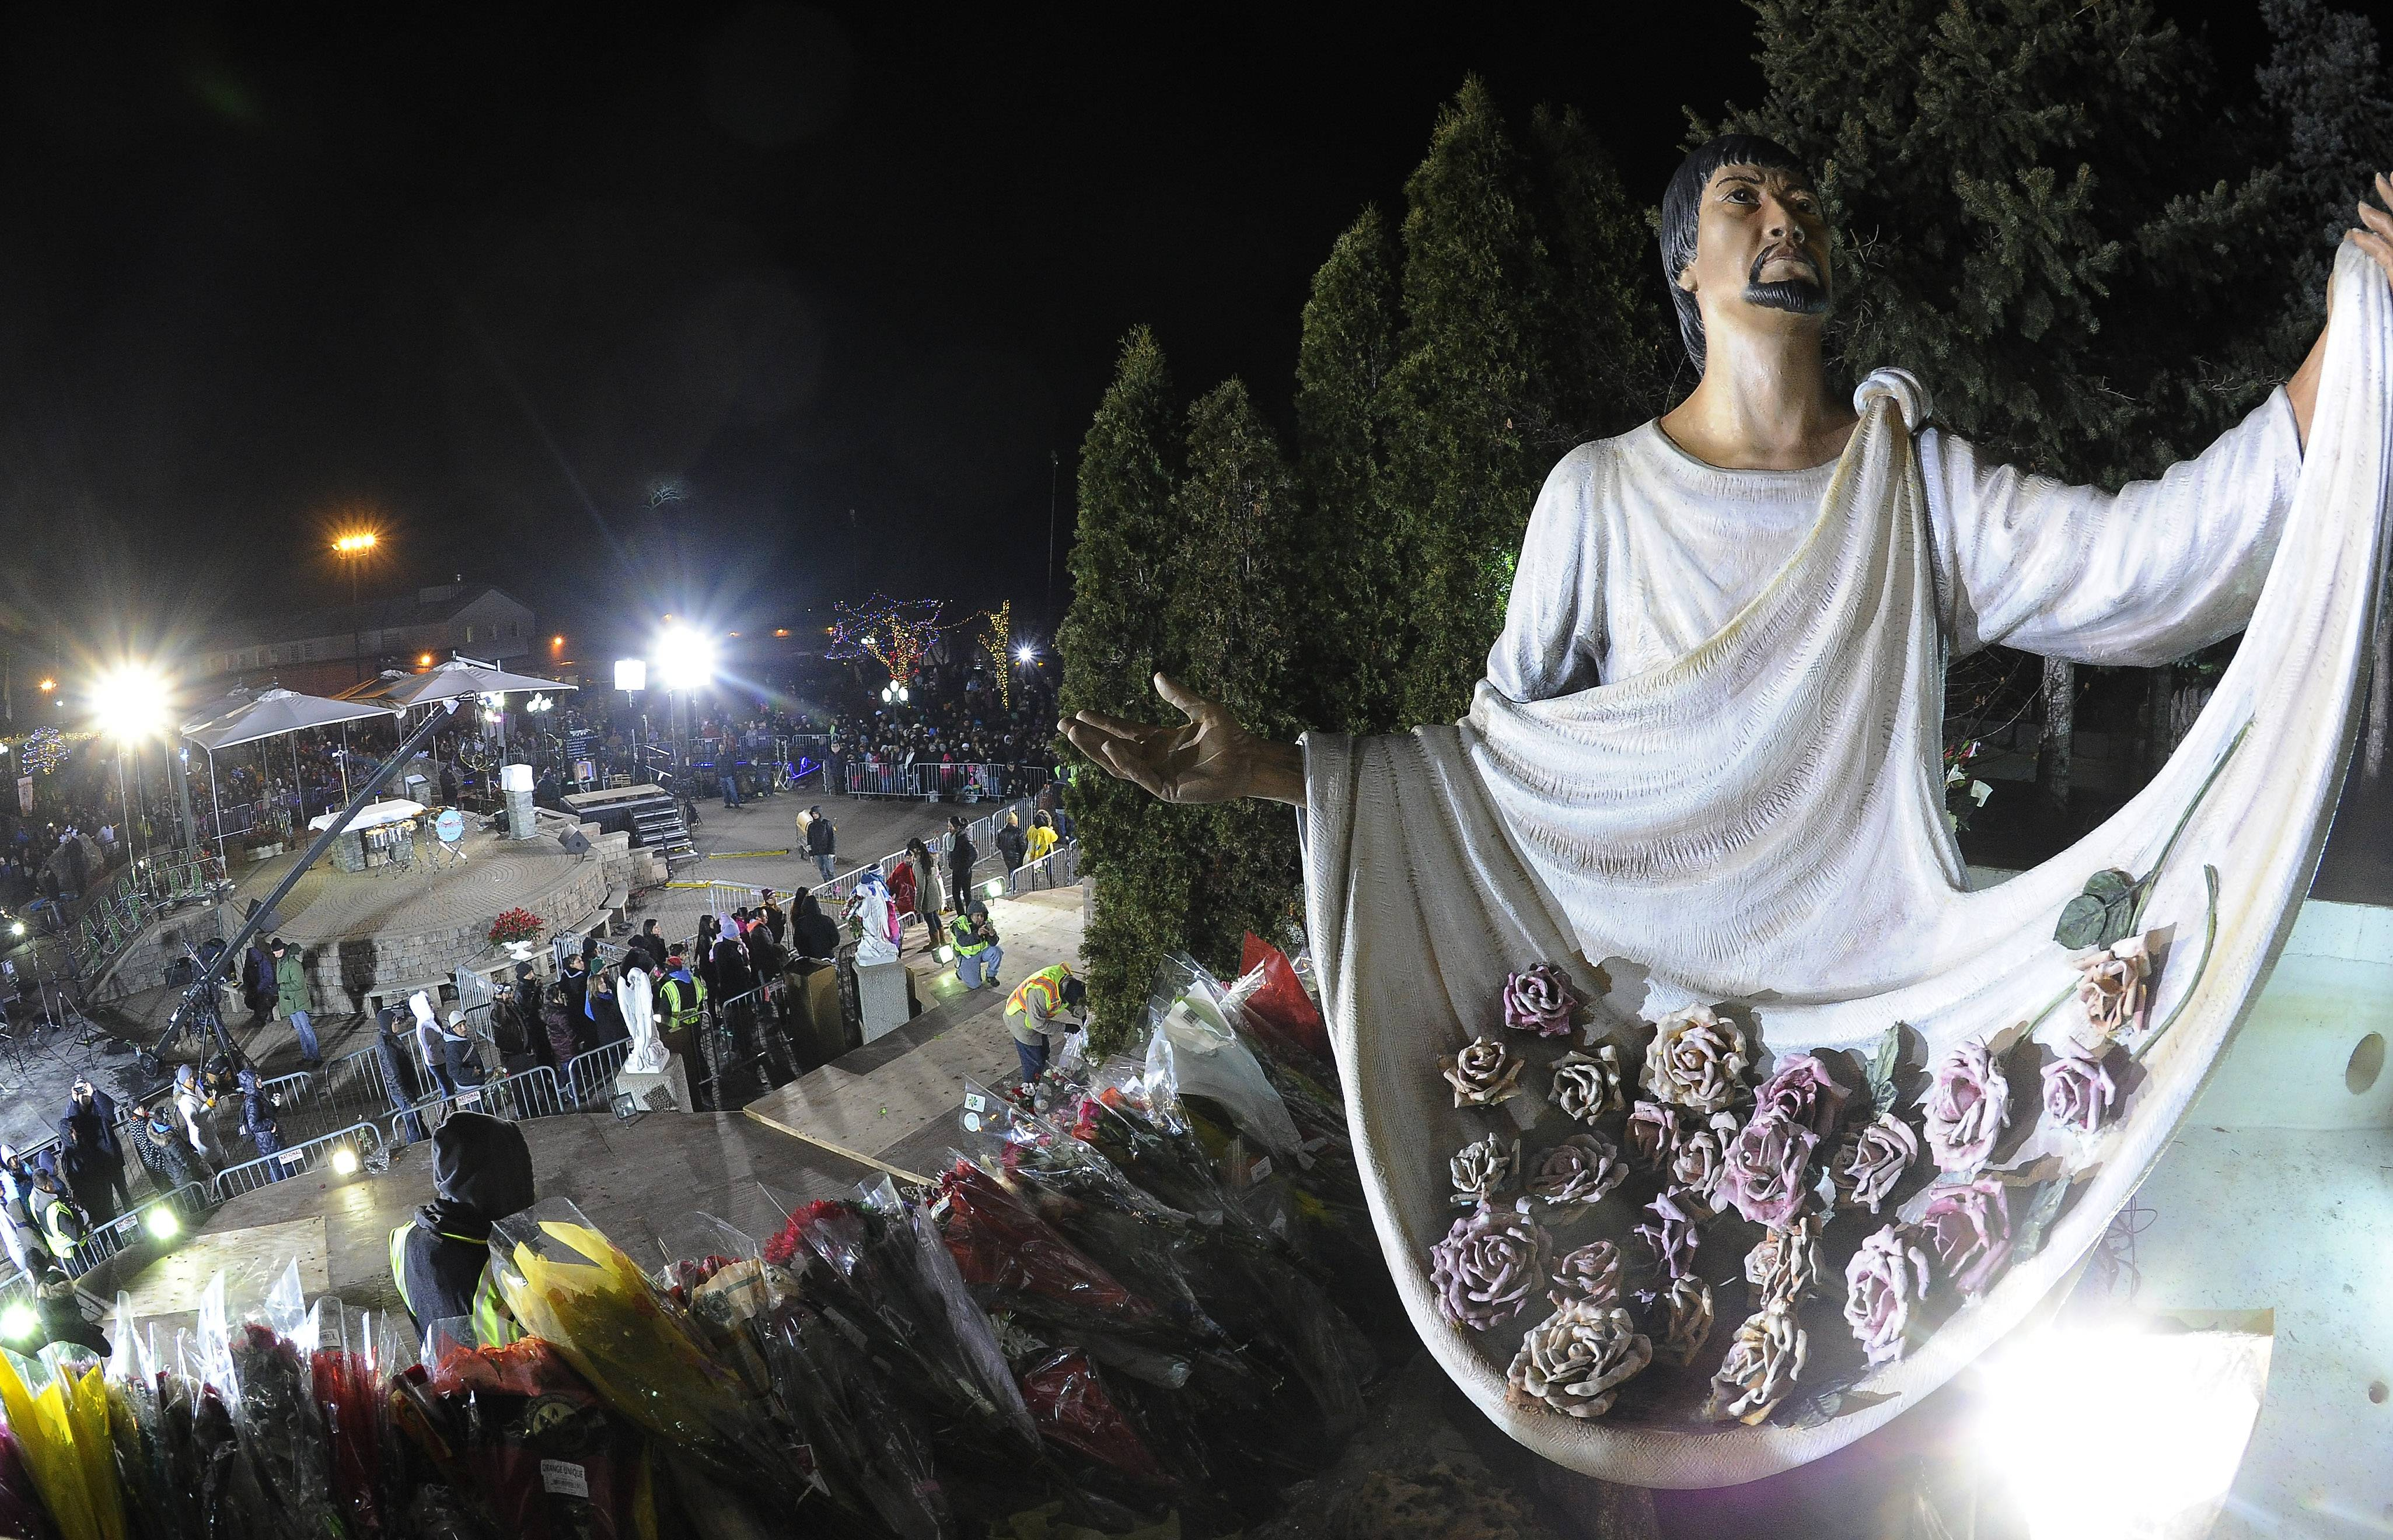 Thousands expected in Des Plaines for Our Lady of Guadalupe celebration